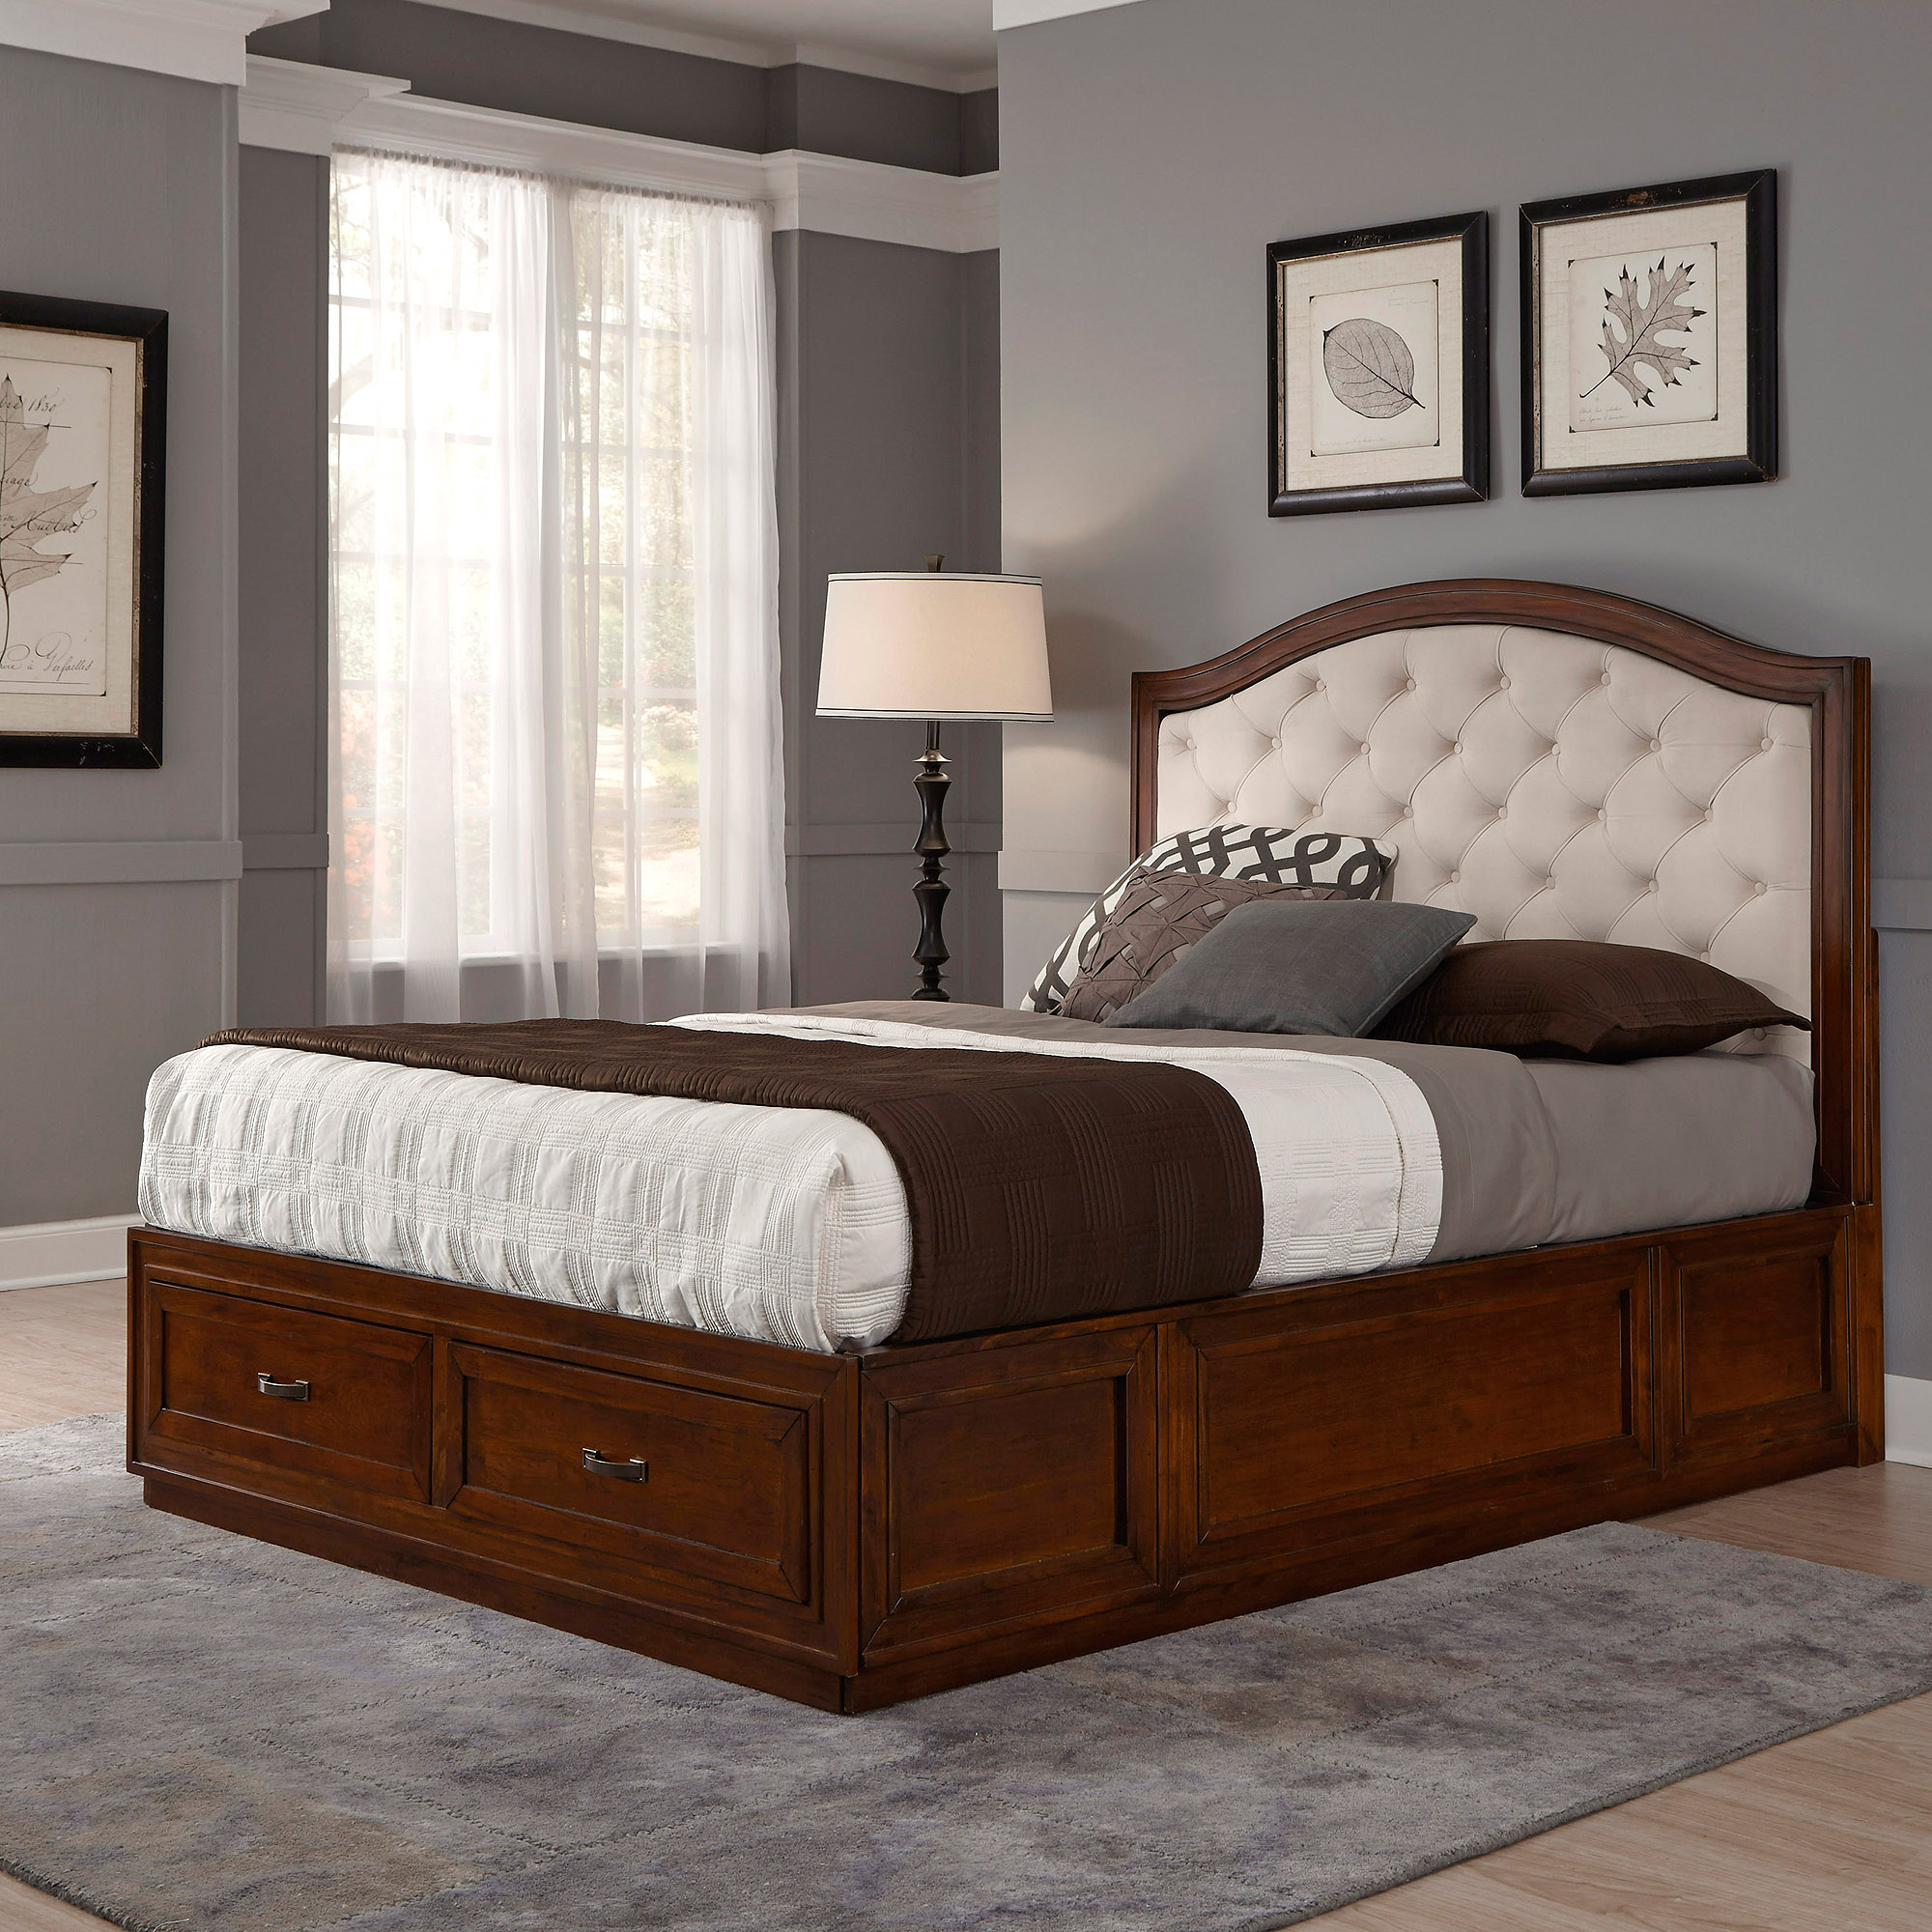 Duet Queen Tufted Diamond Camelback Bed Oyster Microfiber